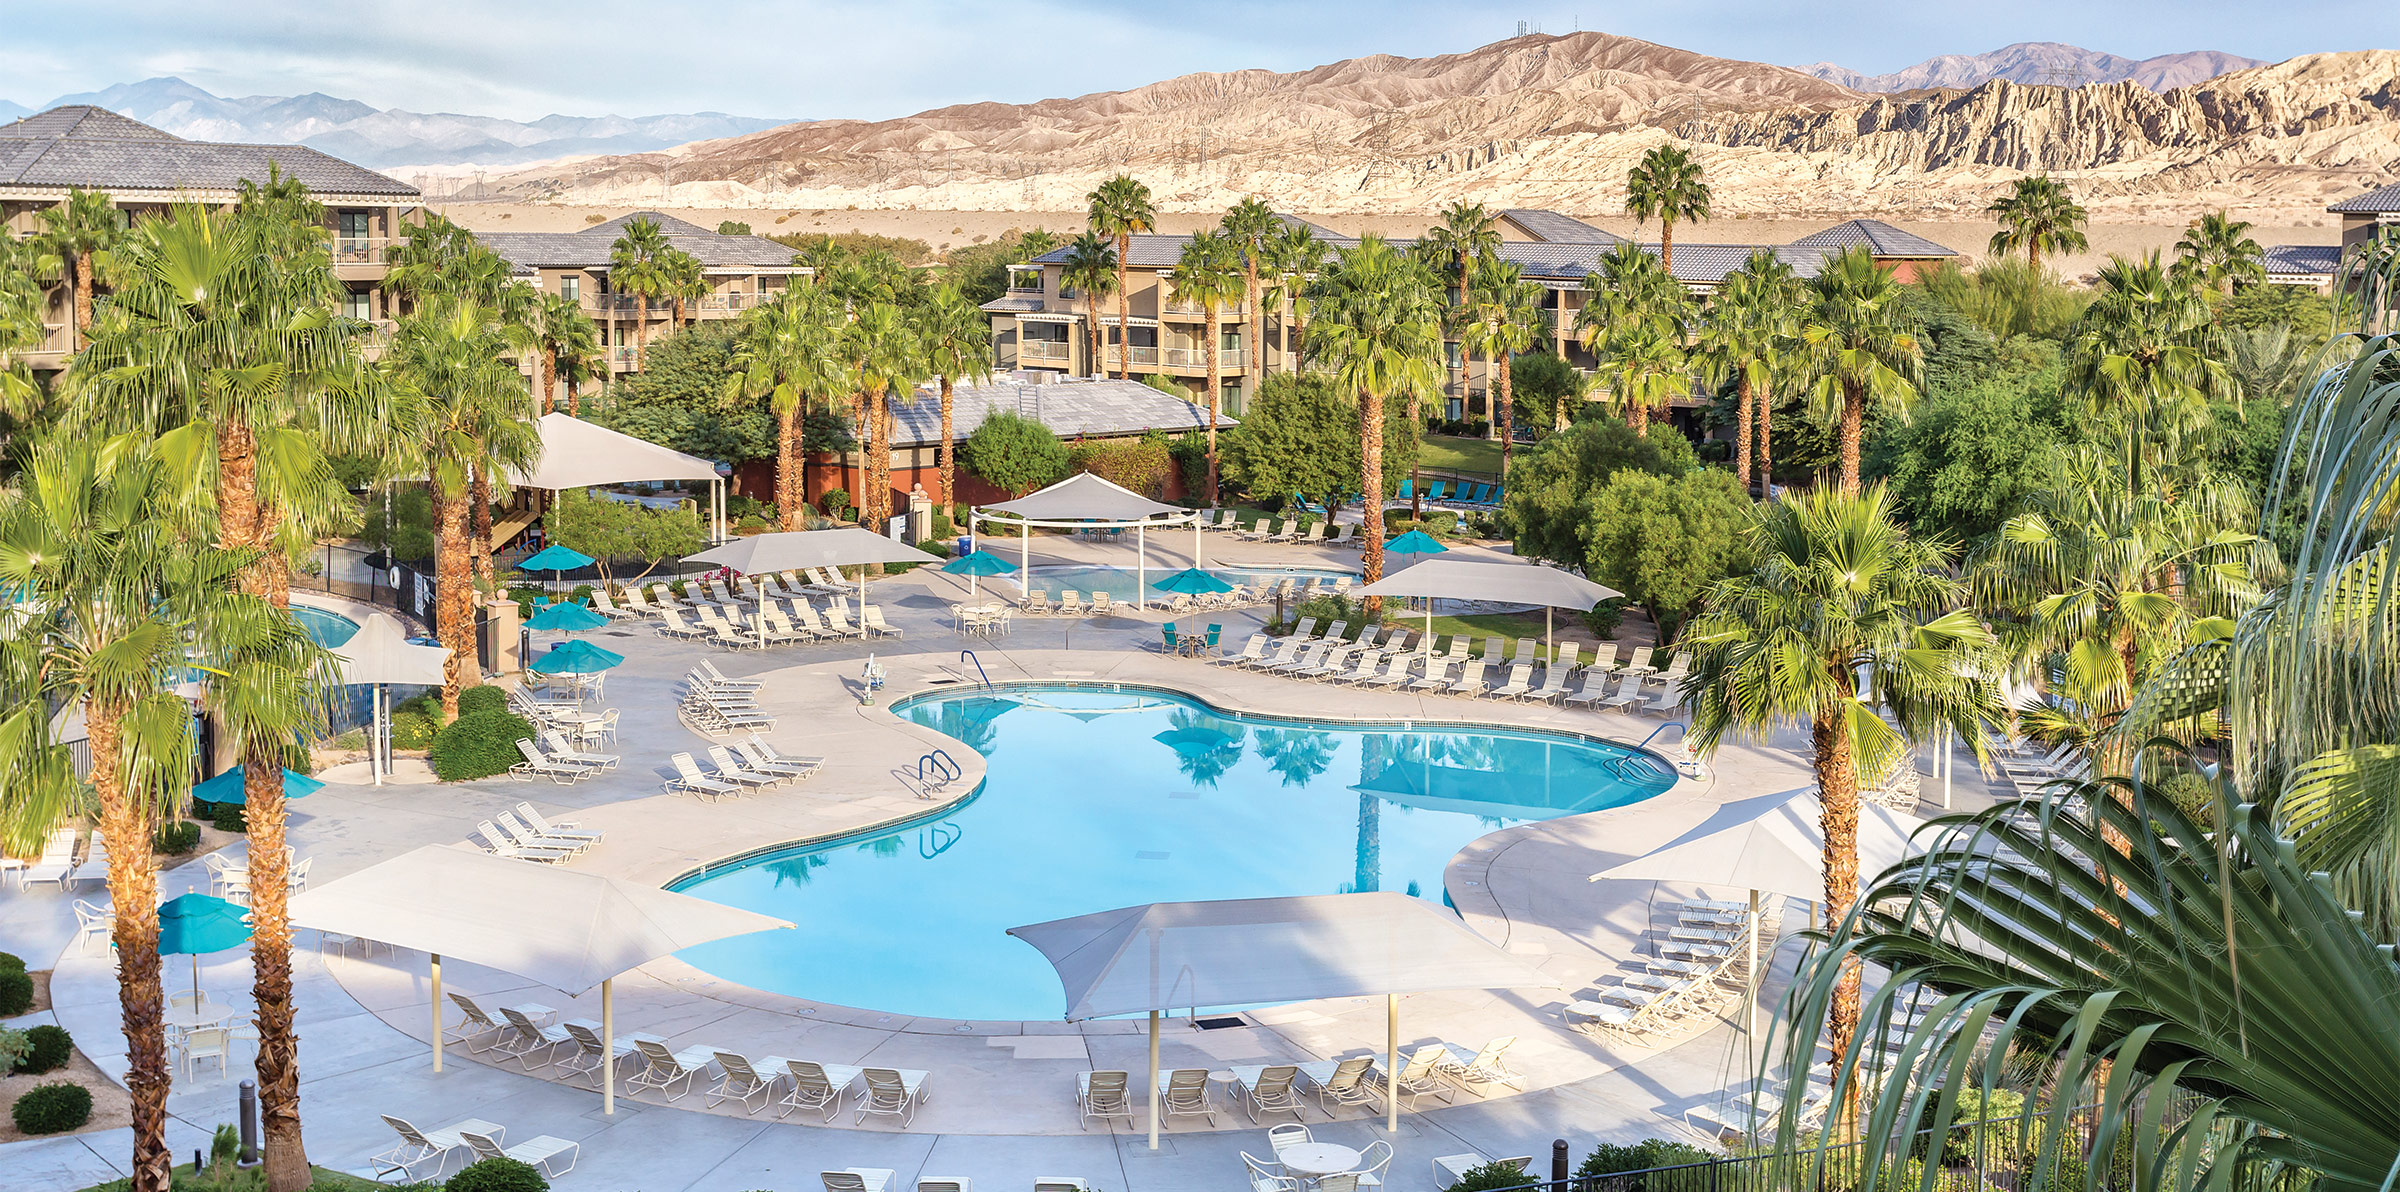 Apartment 2 Bedroom 2 Bath In Indio  CA   Palm Springs  5 miles from COACHELLA photo 20365377